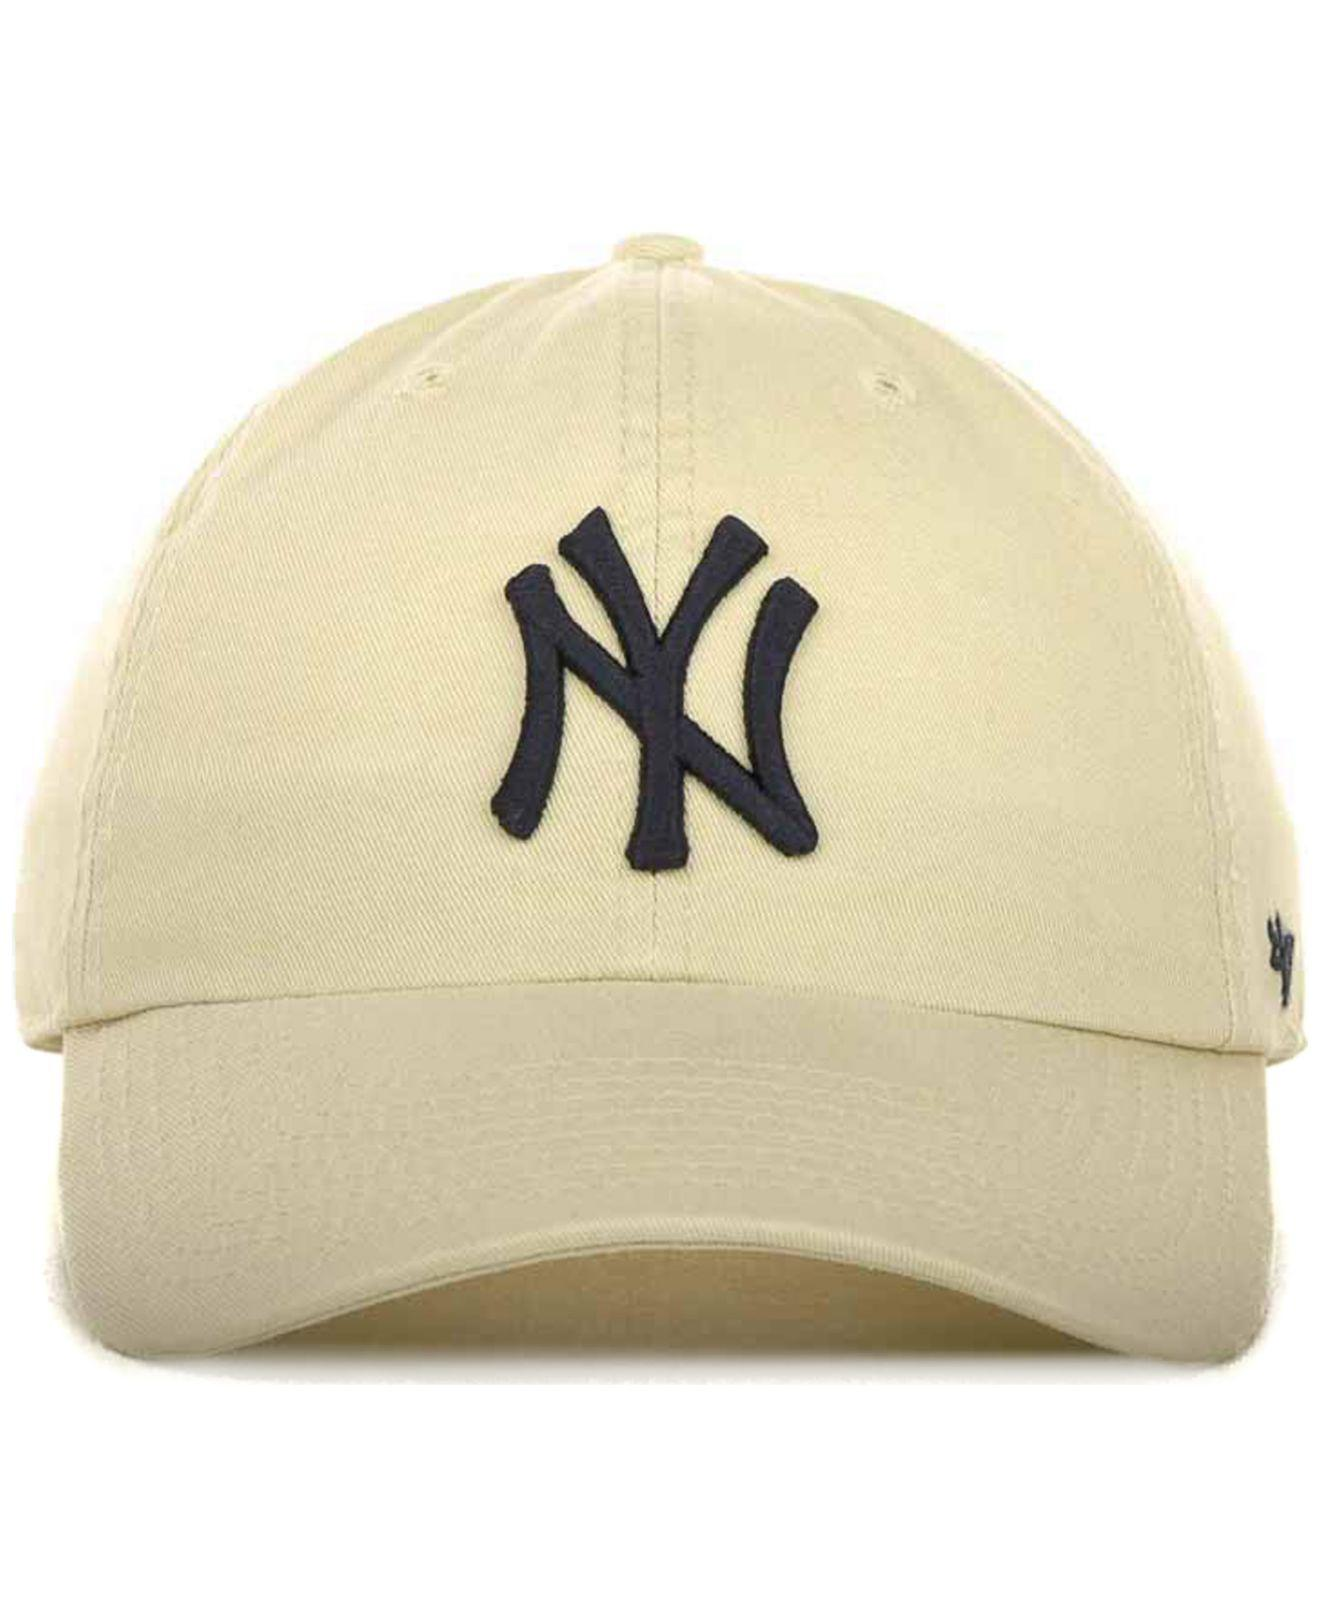 4dab4883a4ee0 Lyst - 47 Brand New York Yankees Clean Up Hat in Natural for Men